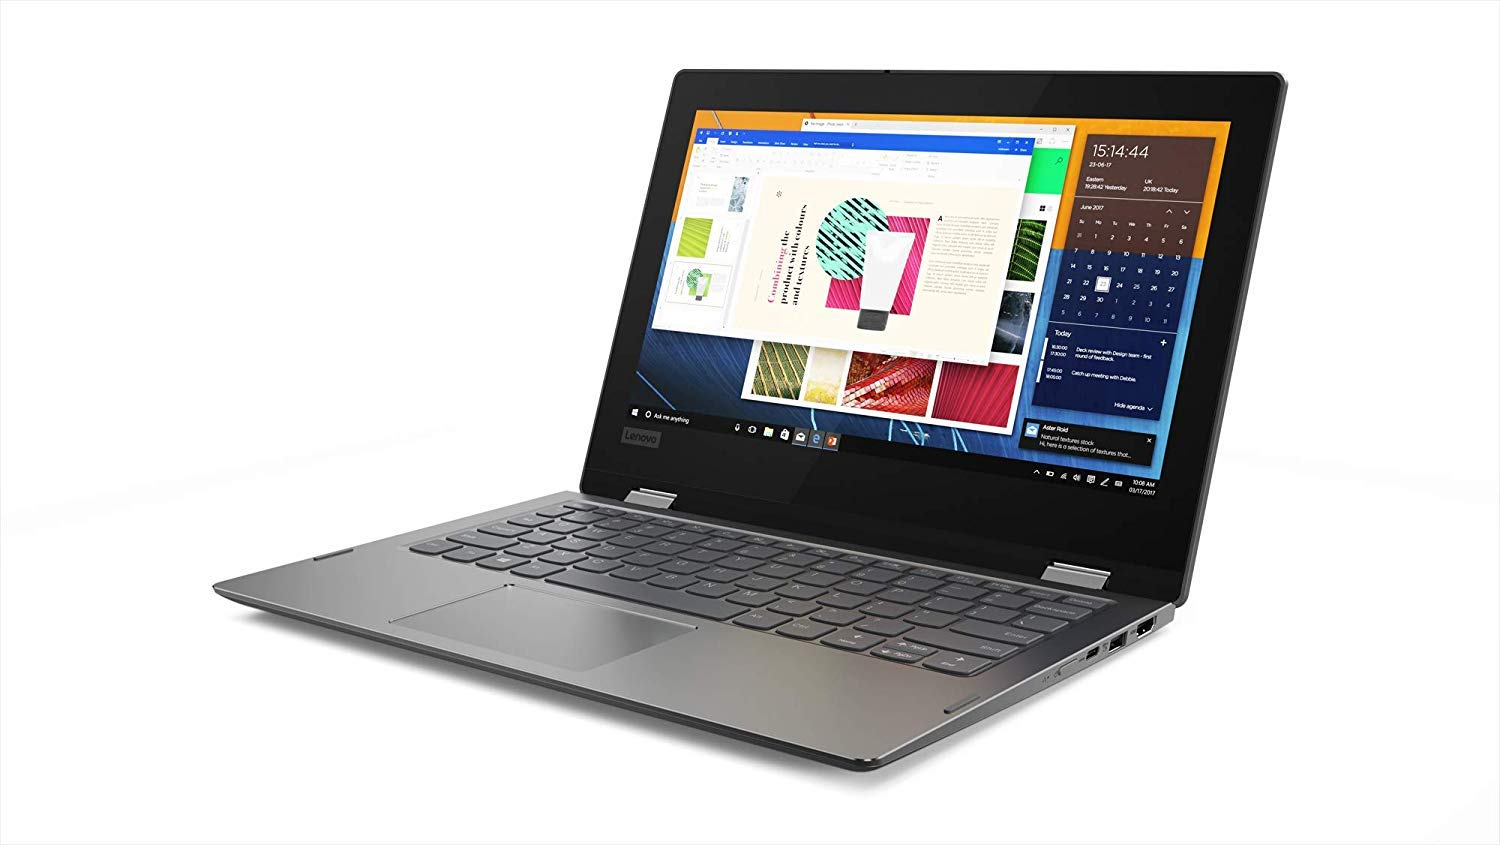 Lenovo Flex 11 2-in-1 Convertible Laptop, 11.6' HD Touchscreen Display, Intel Pentium Silver N5000 up to 2.7GHz, 4GB DDR4, 64GB eMMC, Bluetooth, Windows 10 in S mode, 1 Year Office 365 Personal, Black